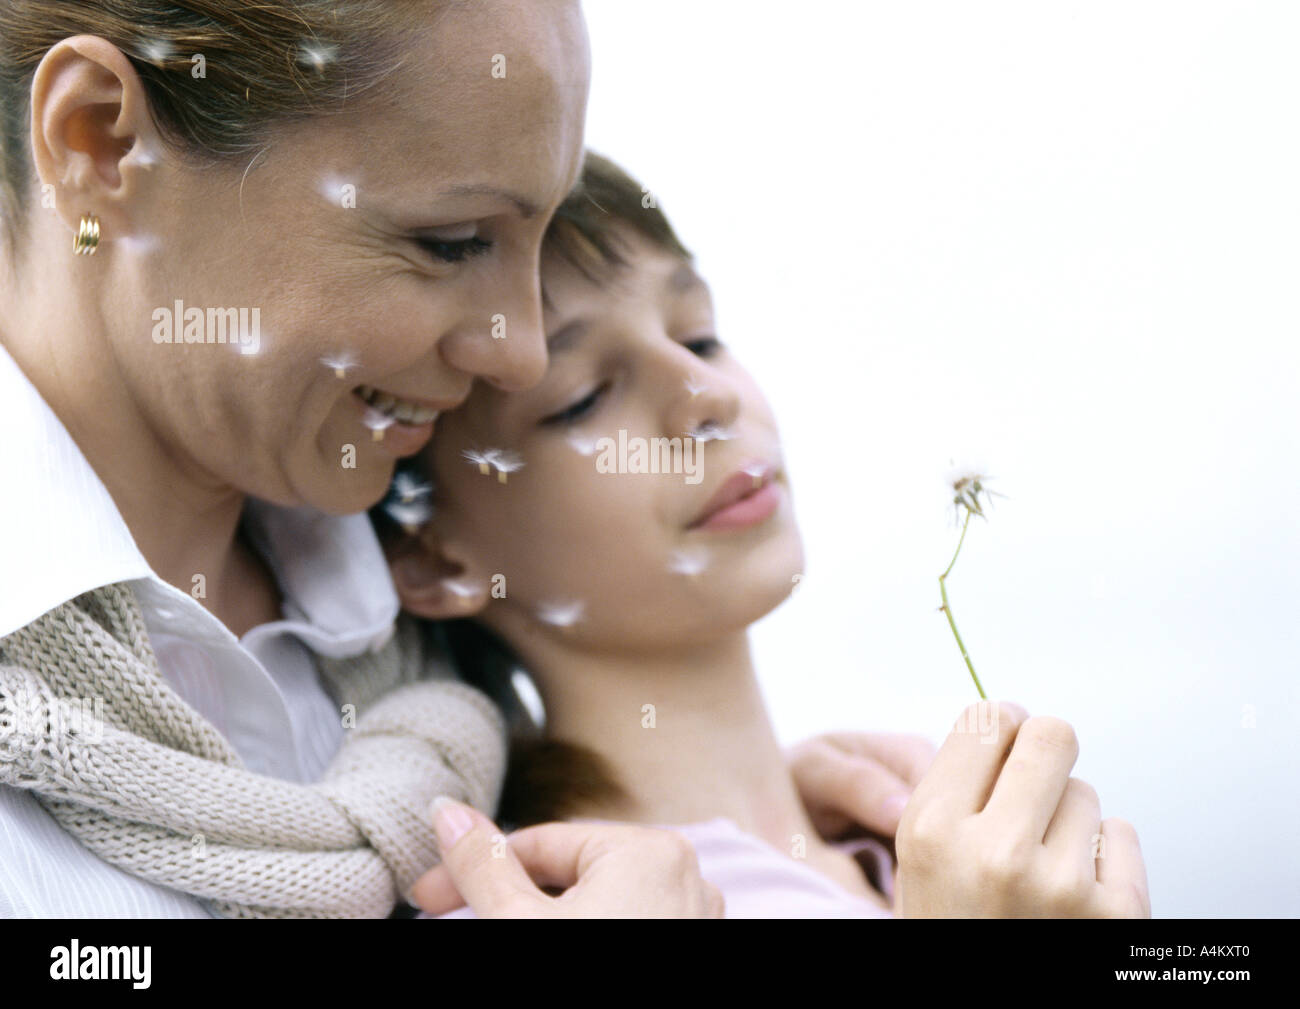 Mother with girl blowing dandelion seeds, close-up - Stock Image